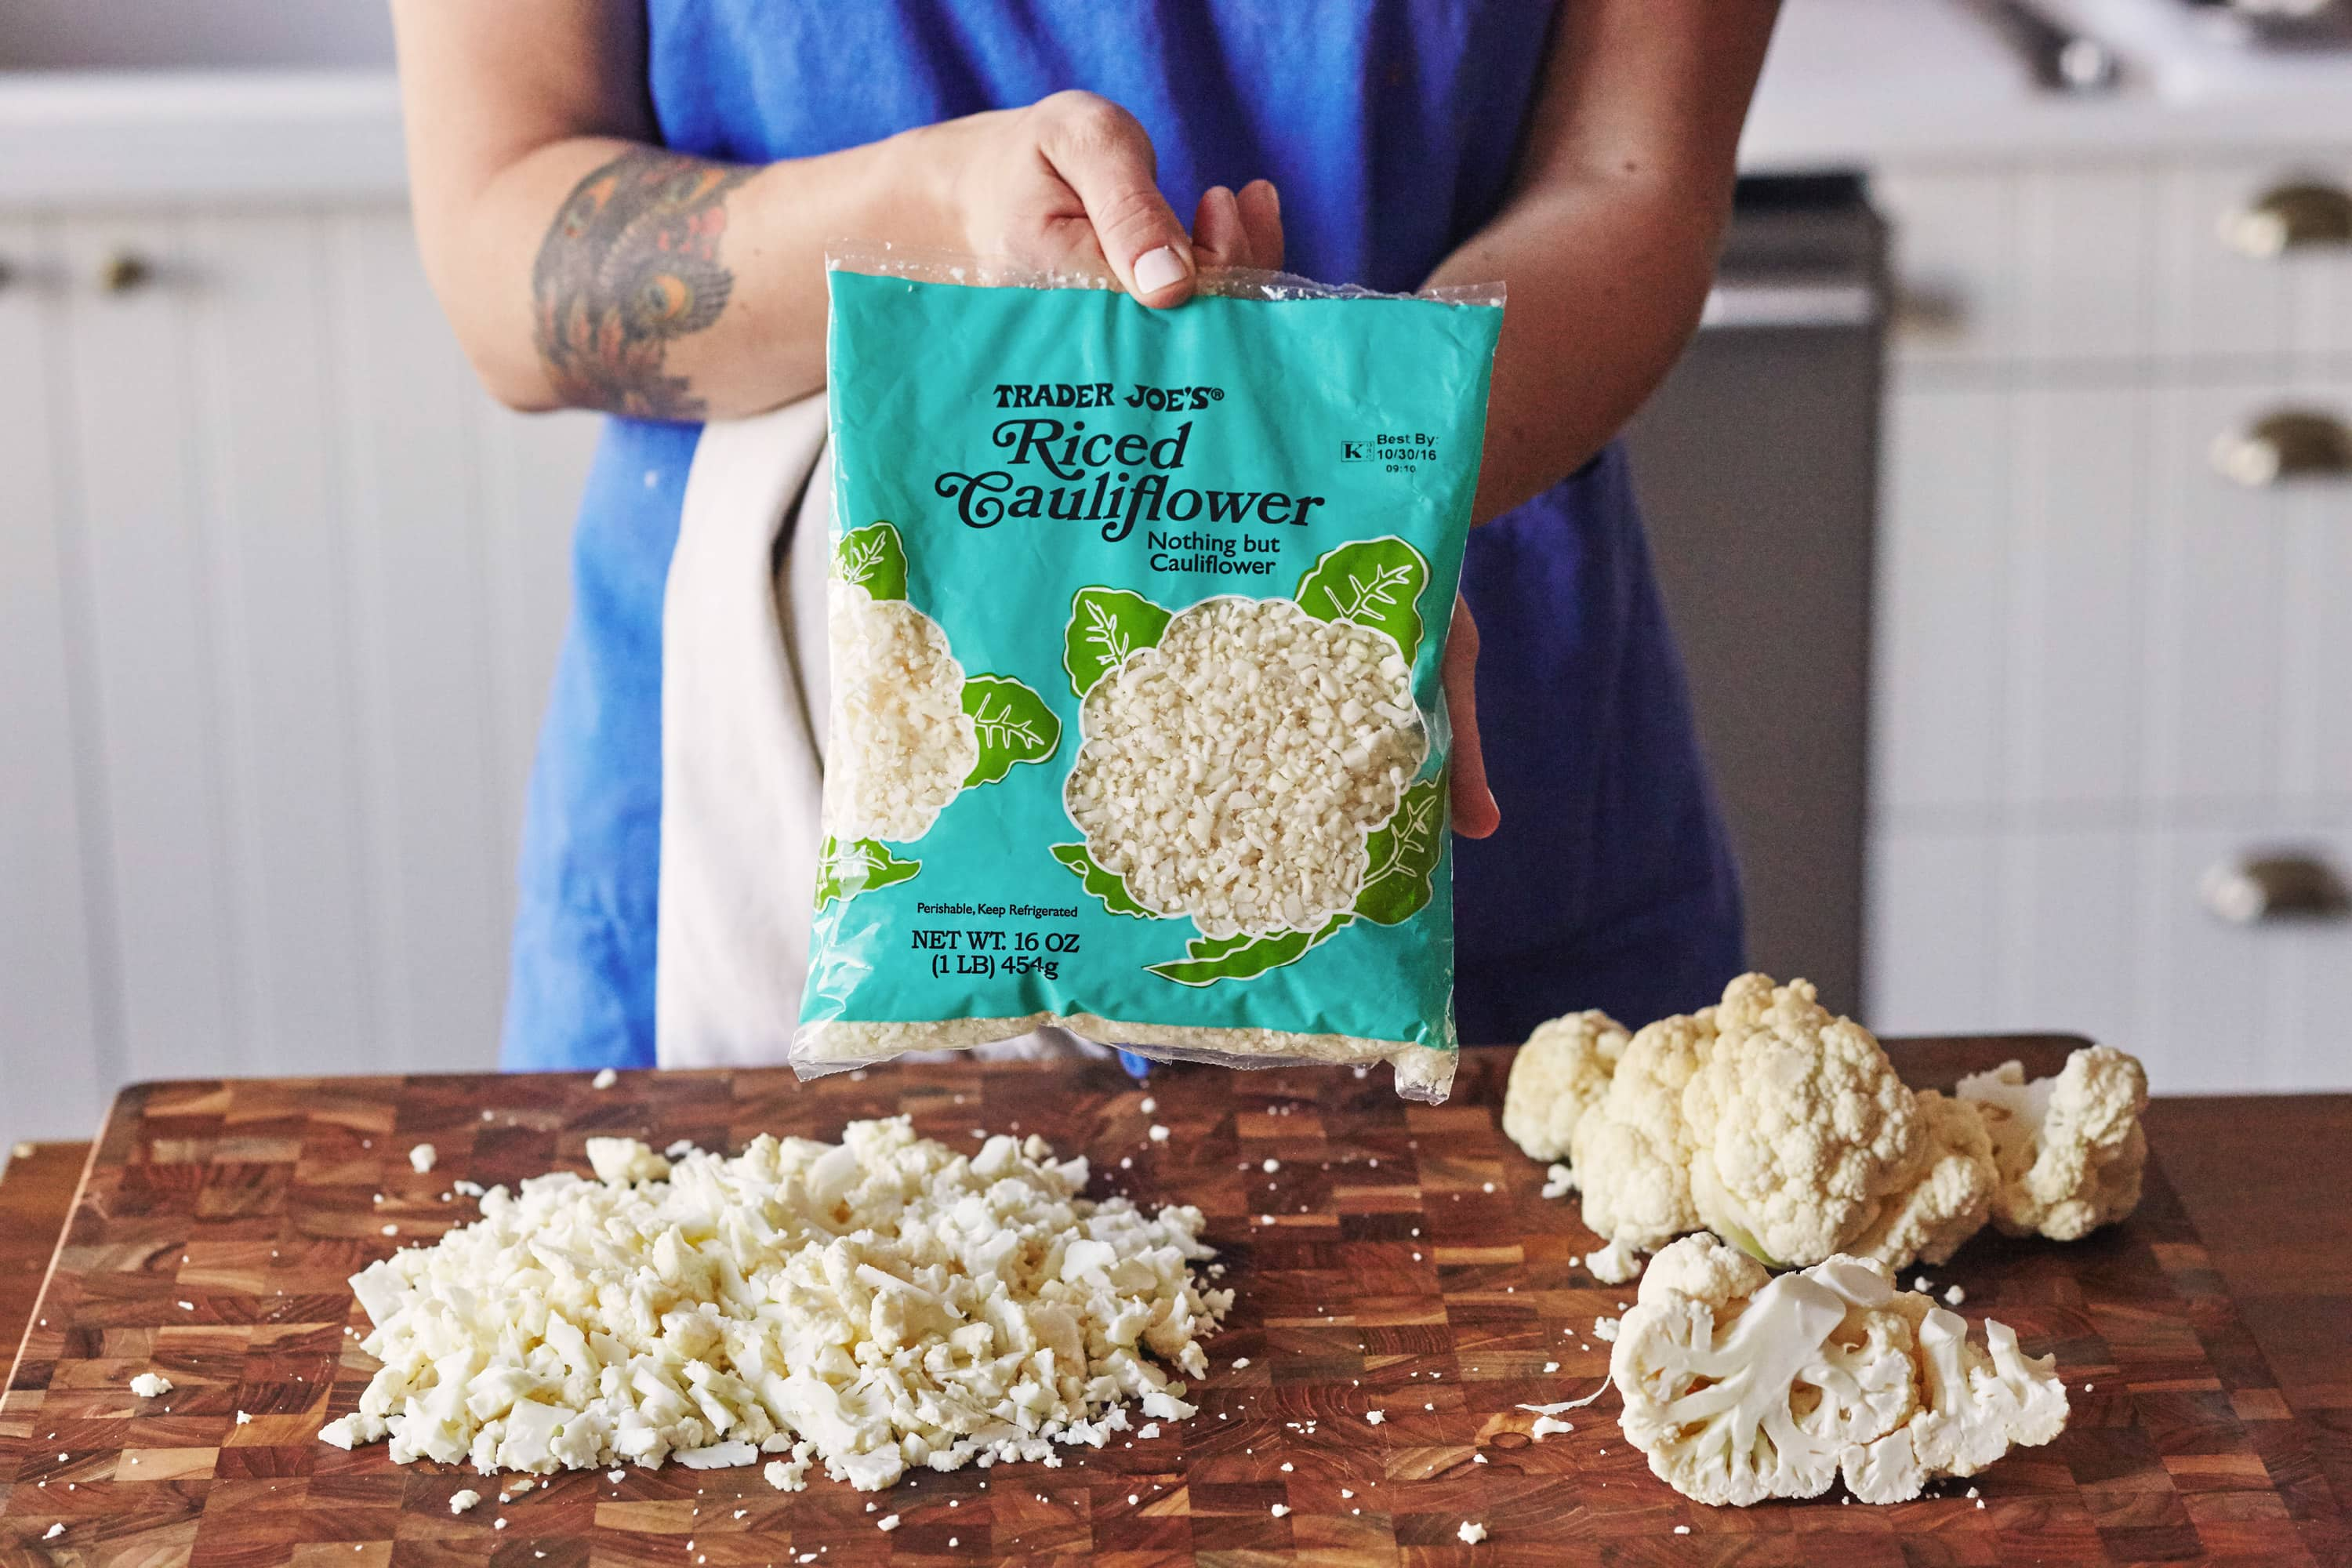 Our Favorite Trader Joe's Items That Save Us Time in the Kitchen